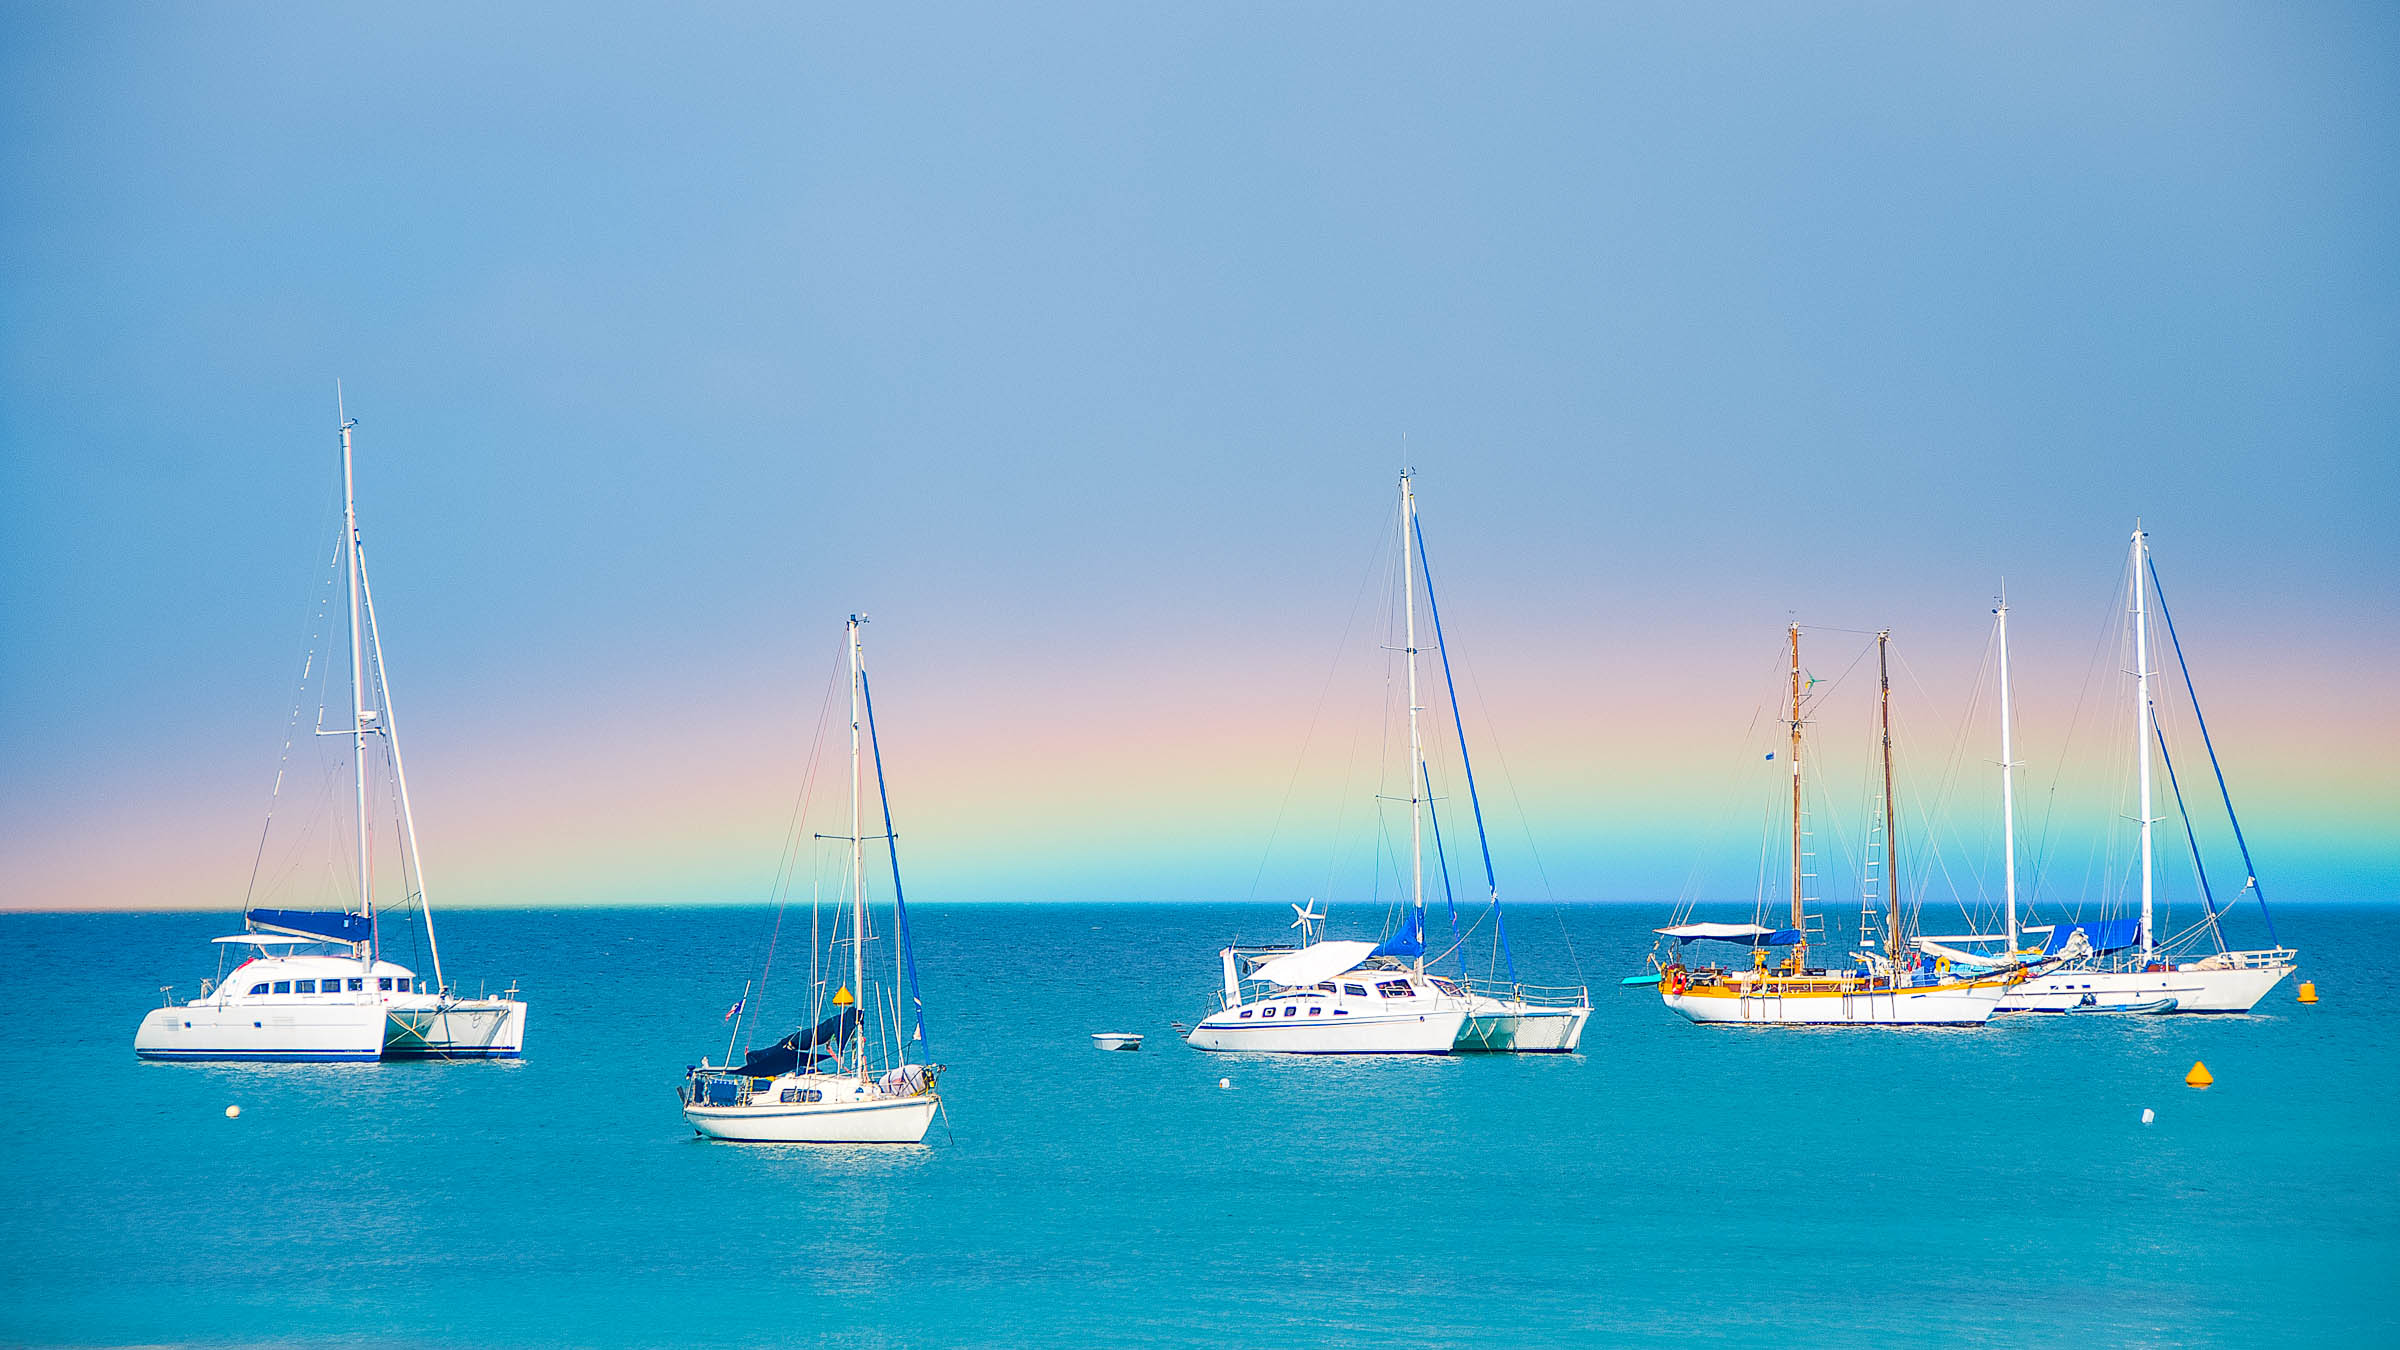 Sailboats off Martinique by Patrick Bennett